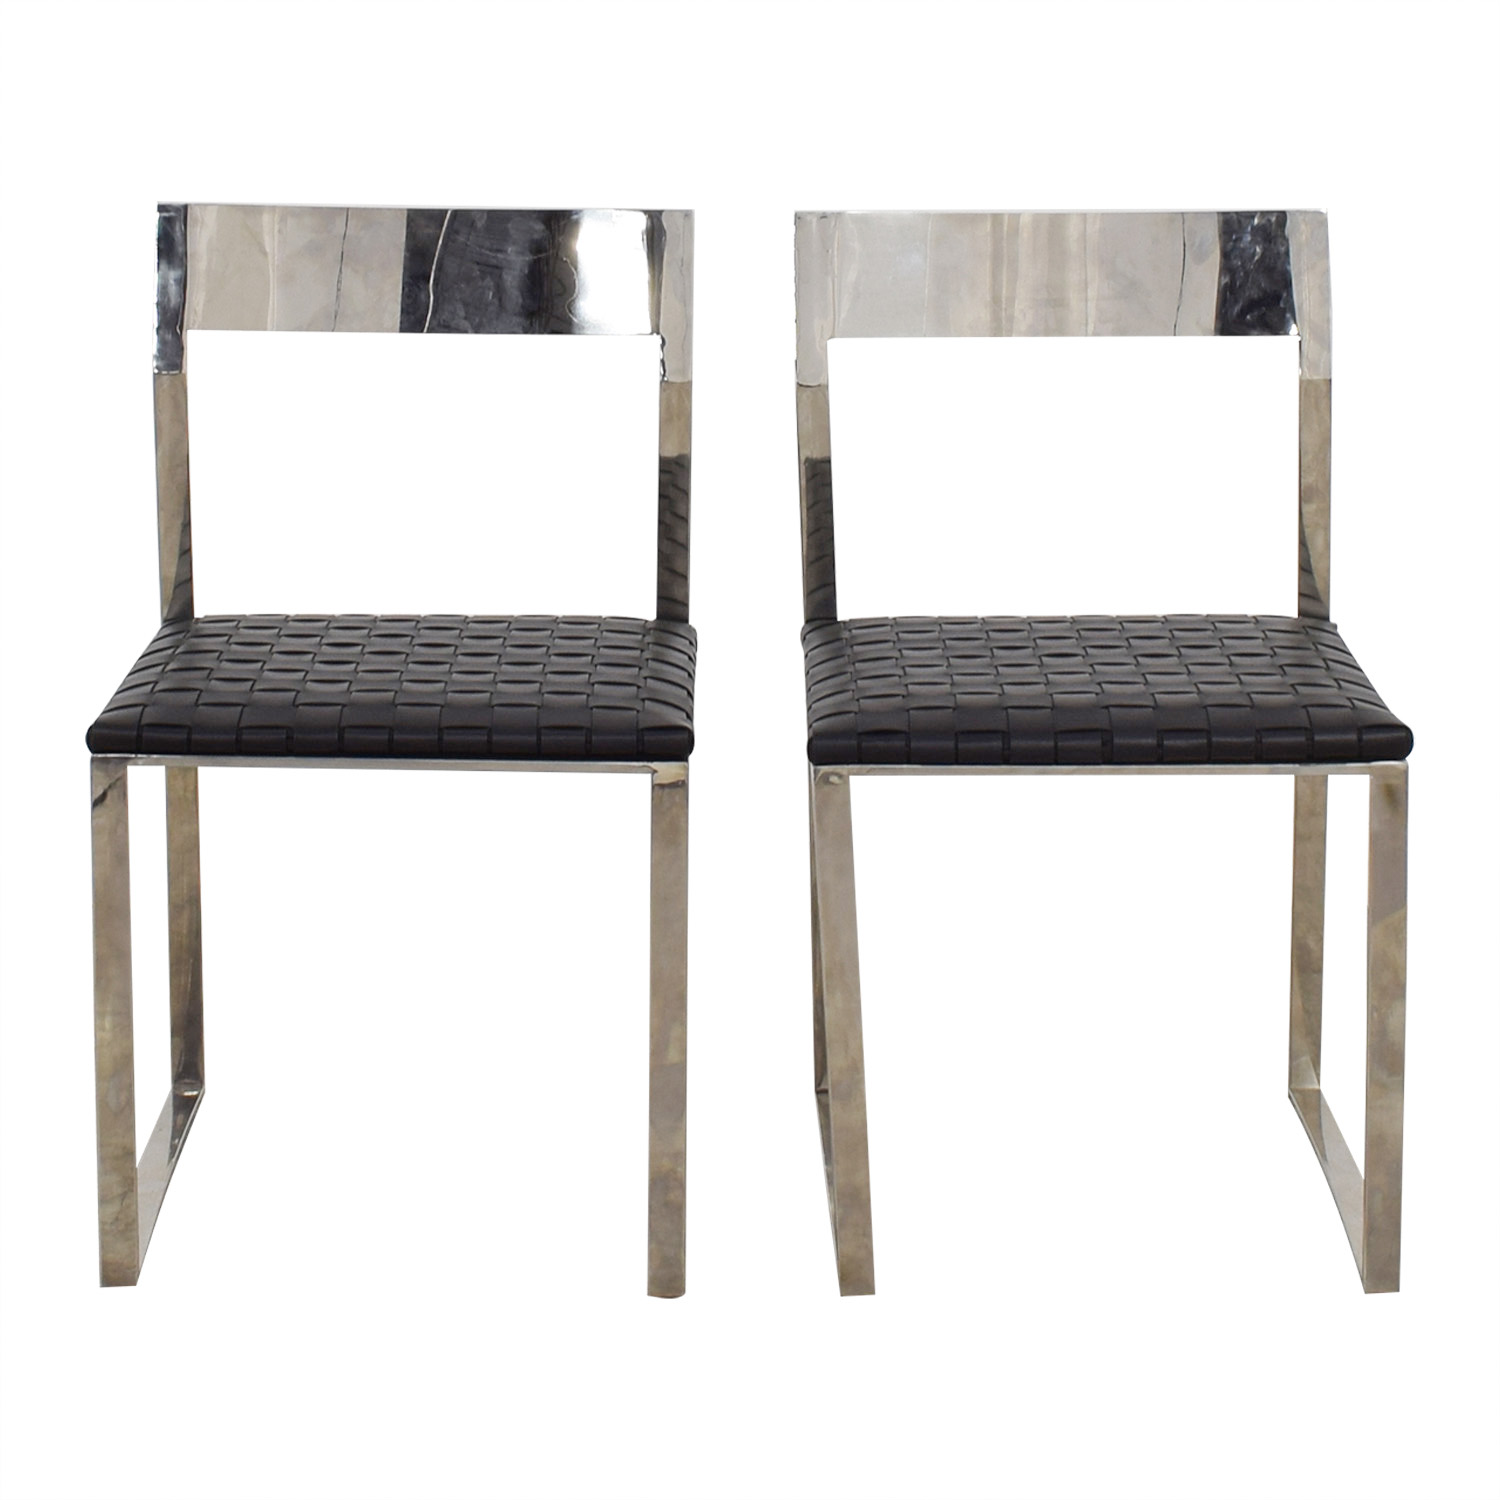 buy Nuevo Nuevo Camille Black Leather and Mirrored Steel Dining Chairs online